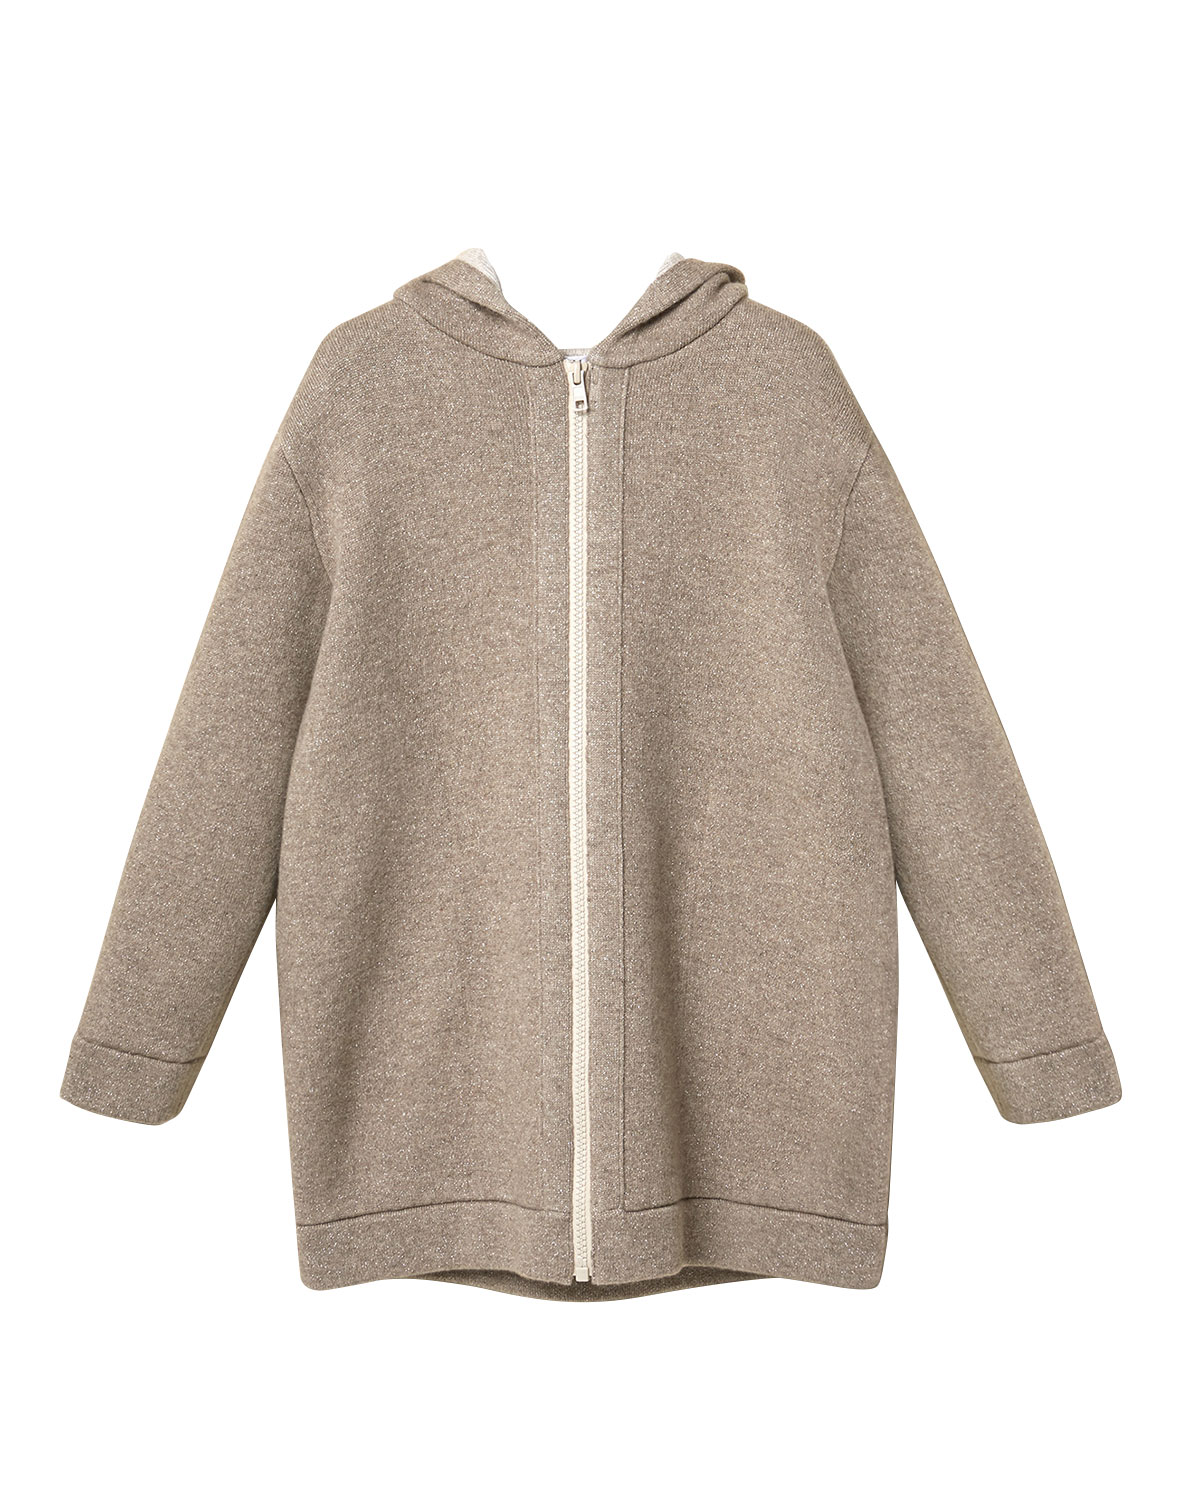 Brunello Cucinelli GIRL'S METALLIC DOUBLE-FACE CASHMERE HOODED ZIP-FRONT JACKET